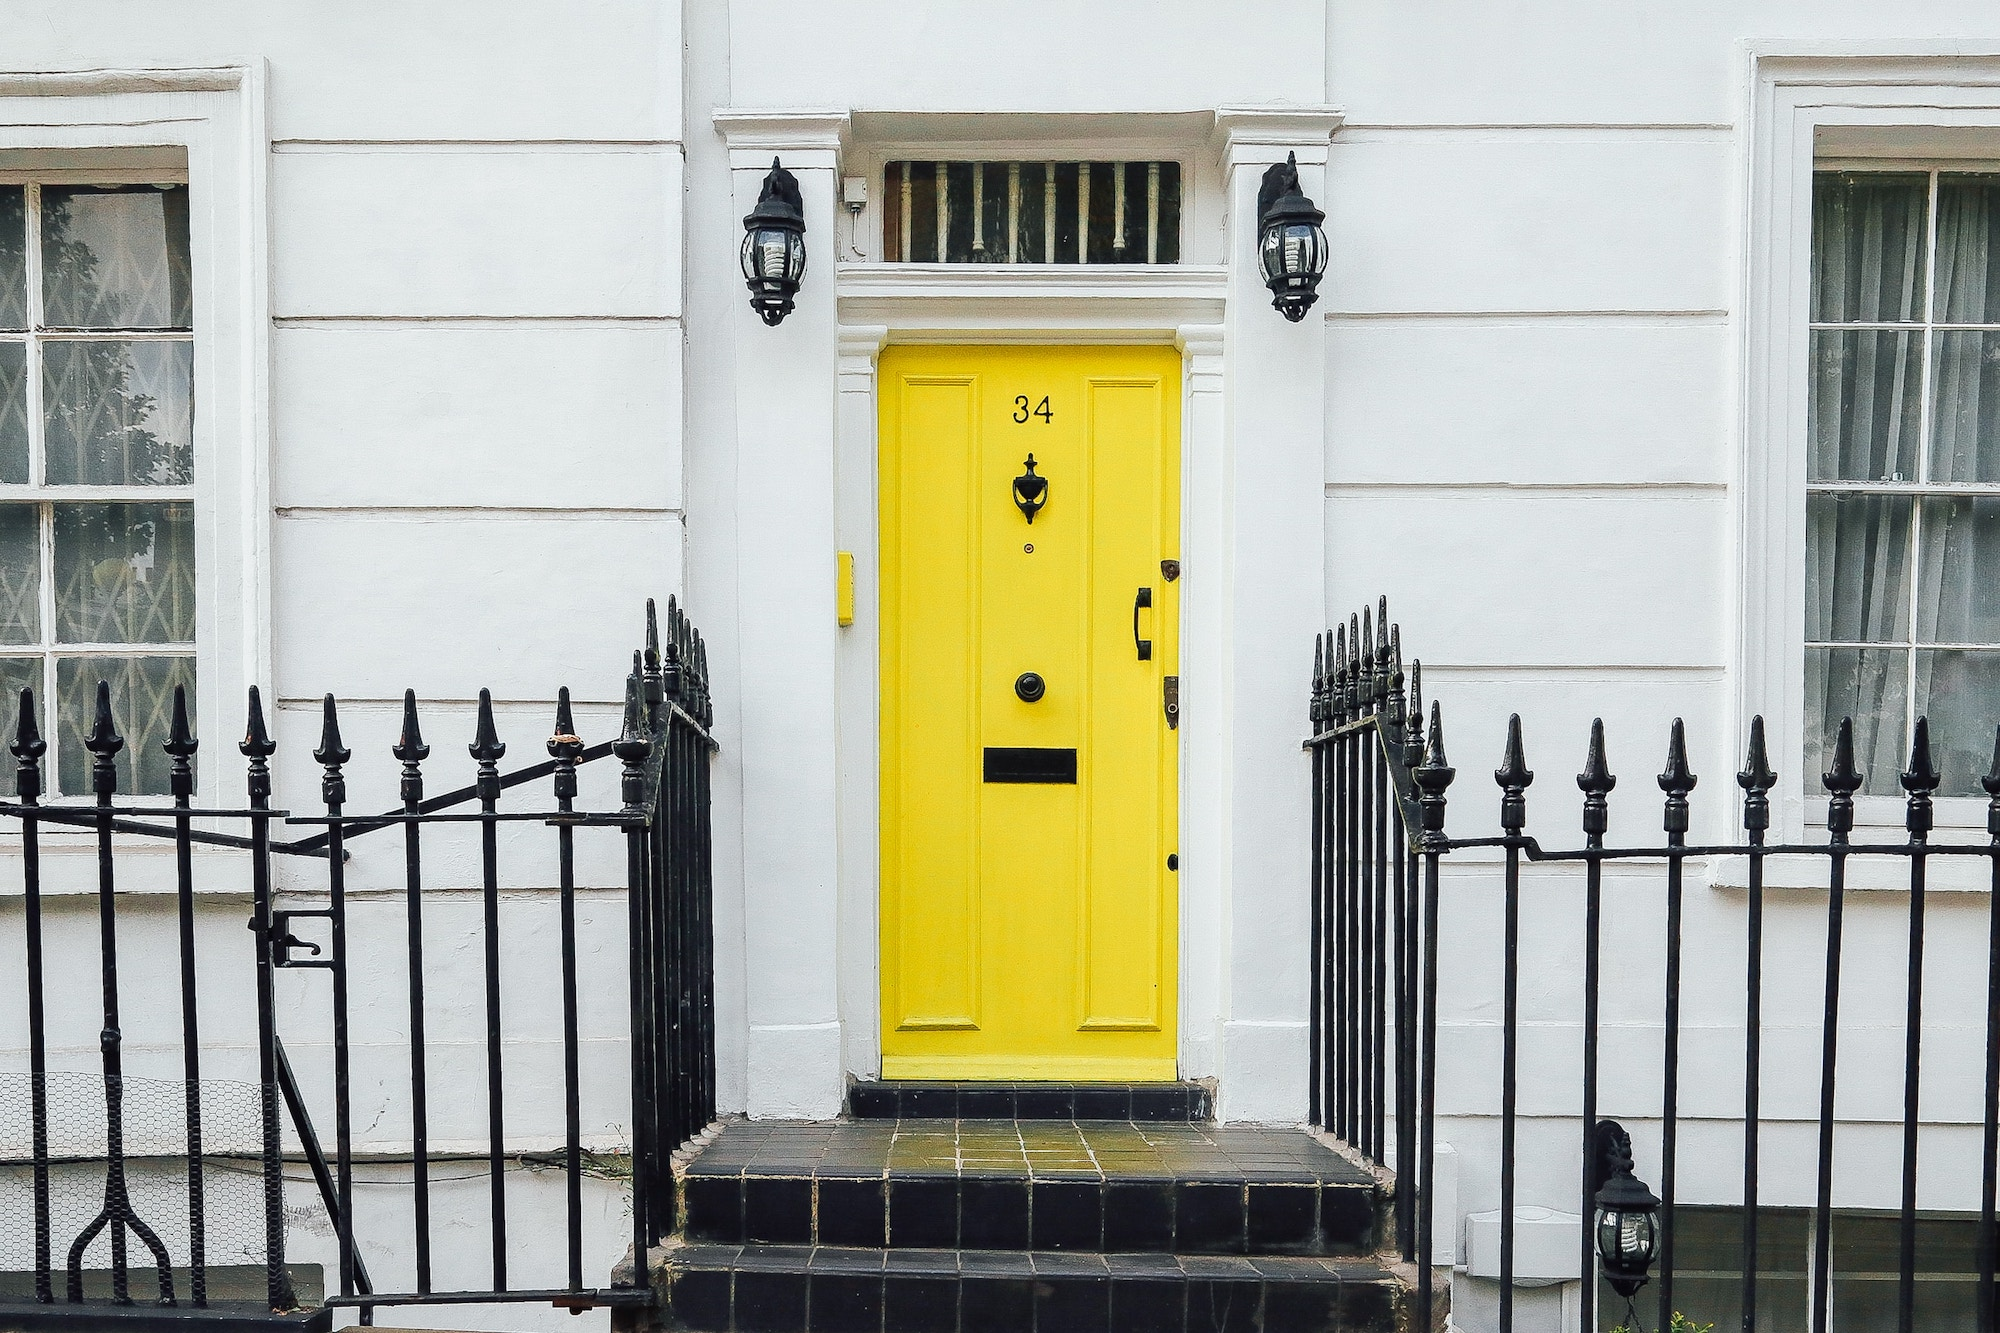 Symmetrical photo of a yellow door of a white house with fences on either side